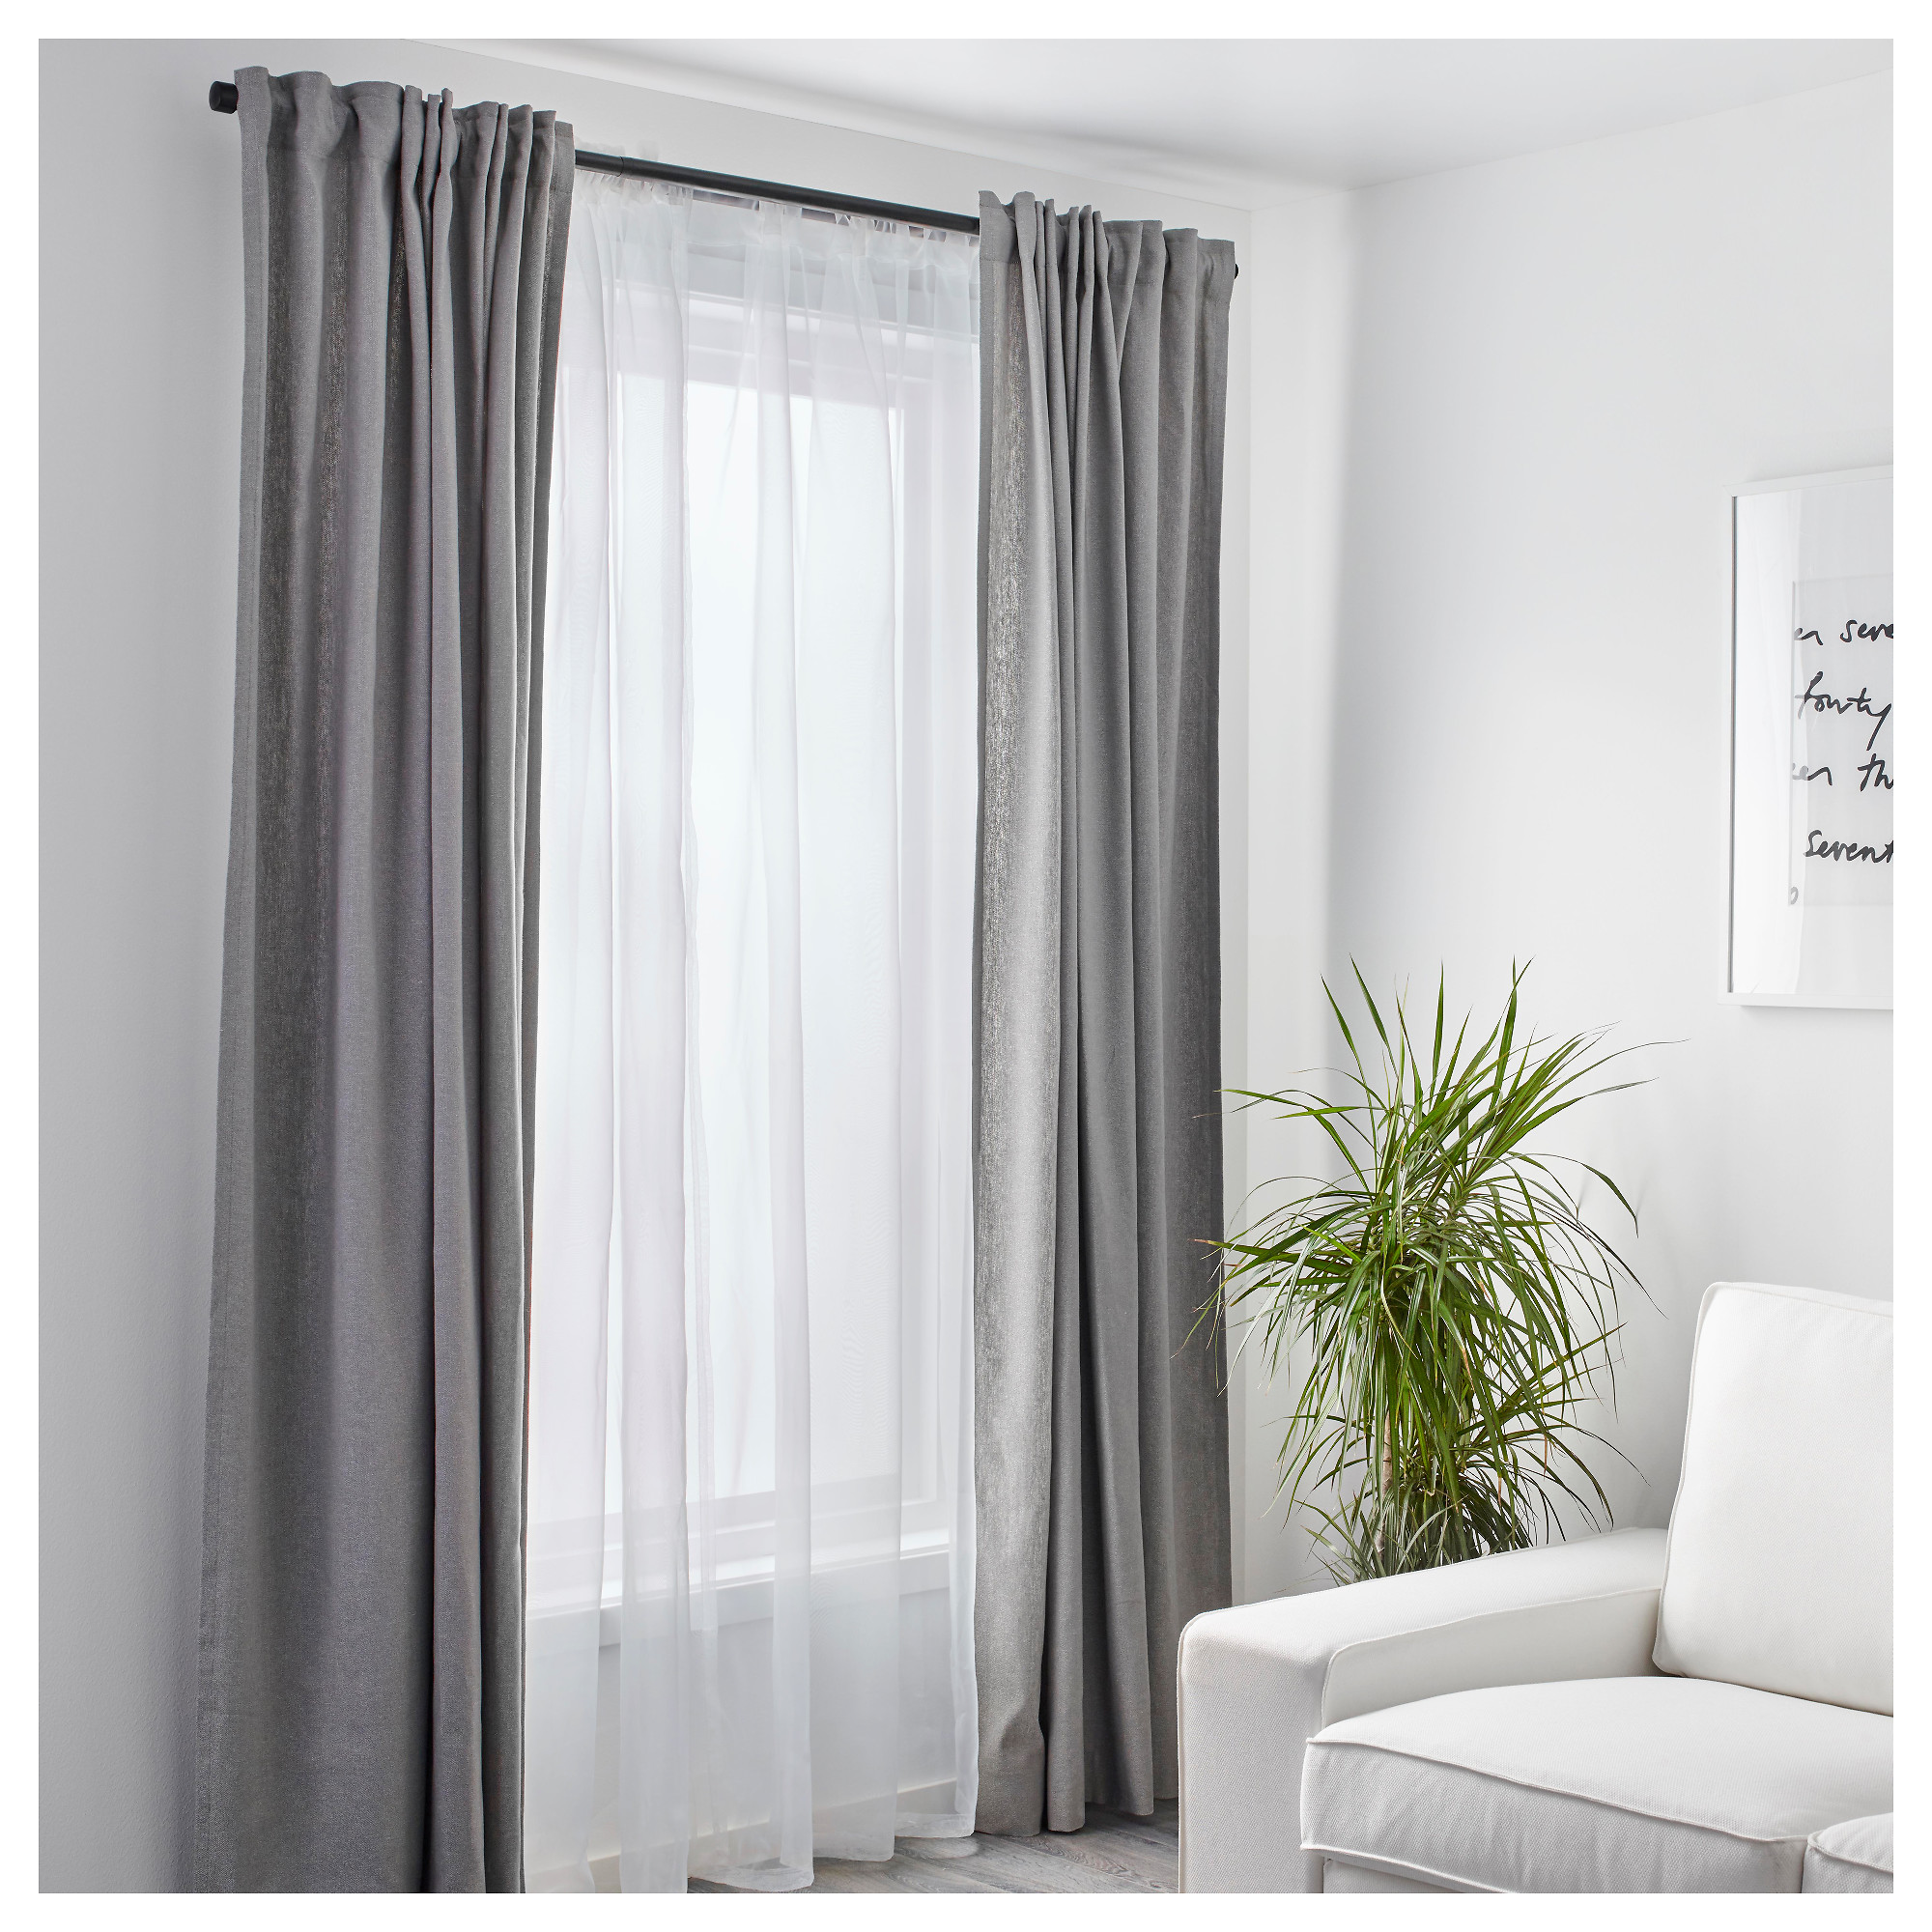 TERESIA Sheer Curtains, 1 Pair   IKEA Part 60